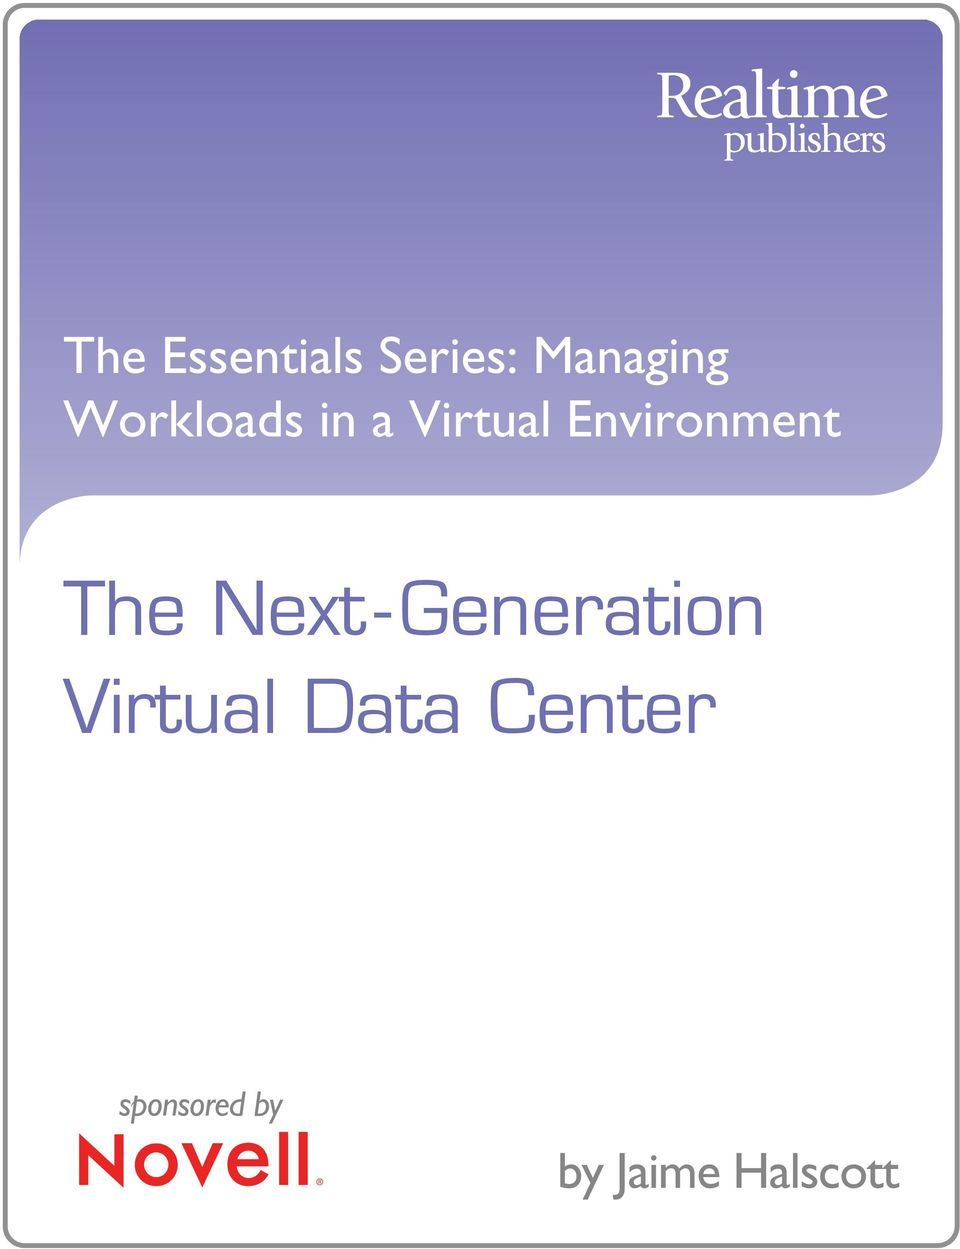 The Next-Generation Virtual Data